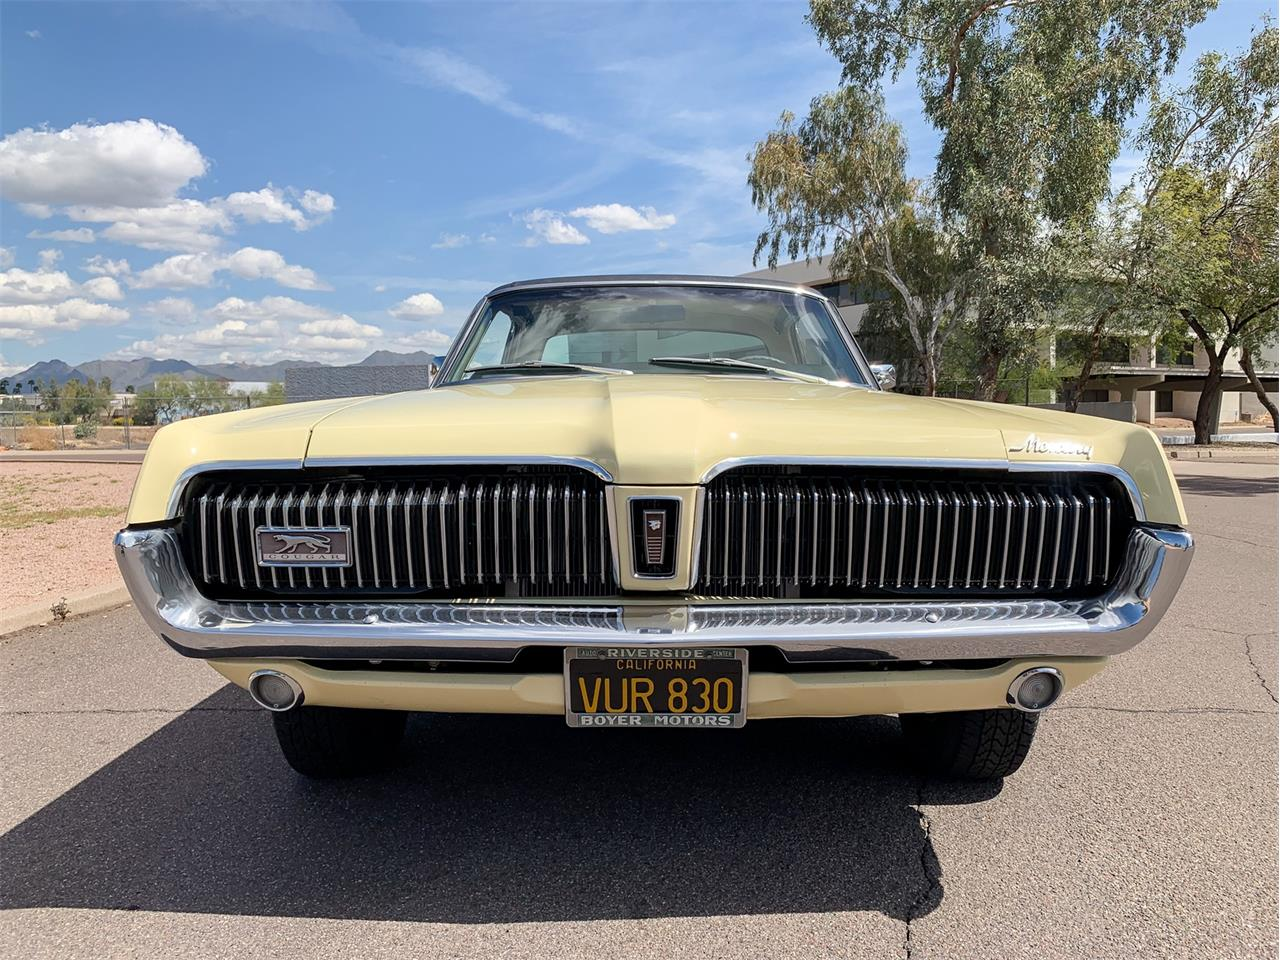 Large Picture of 1968 Mercury Cougar located in Scottsdale Arizona Auction Vehicle Offered by Bring A Trailer - Q4QV